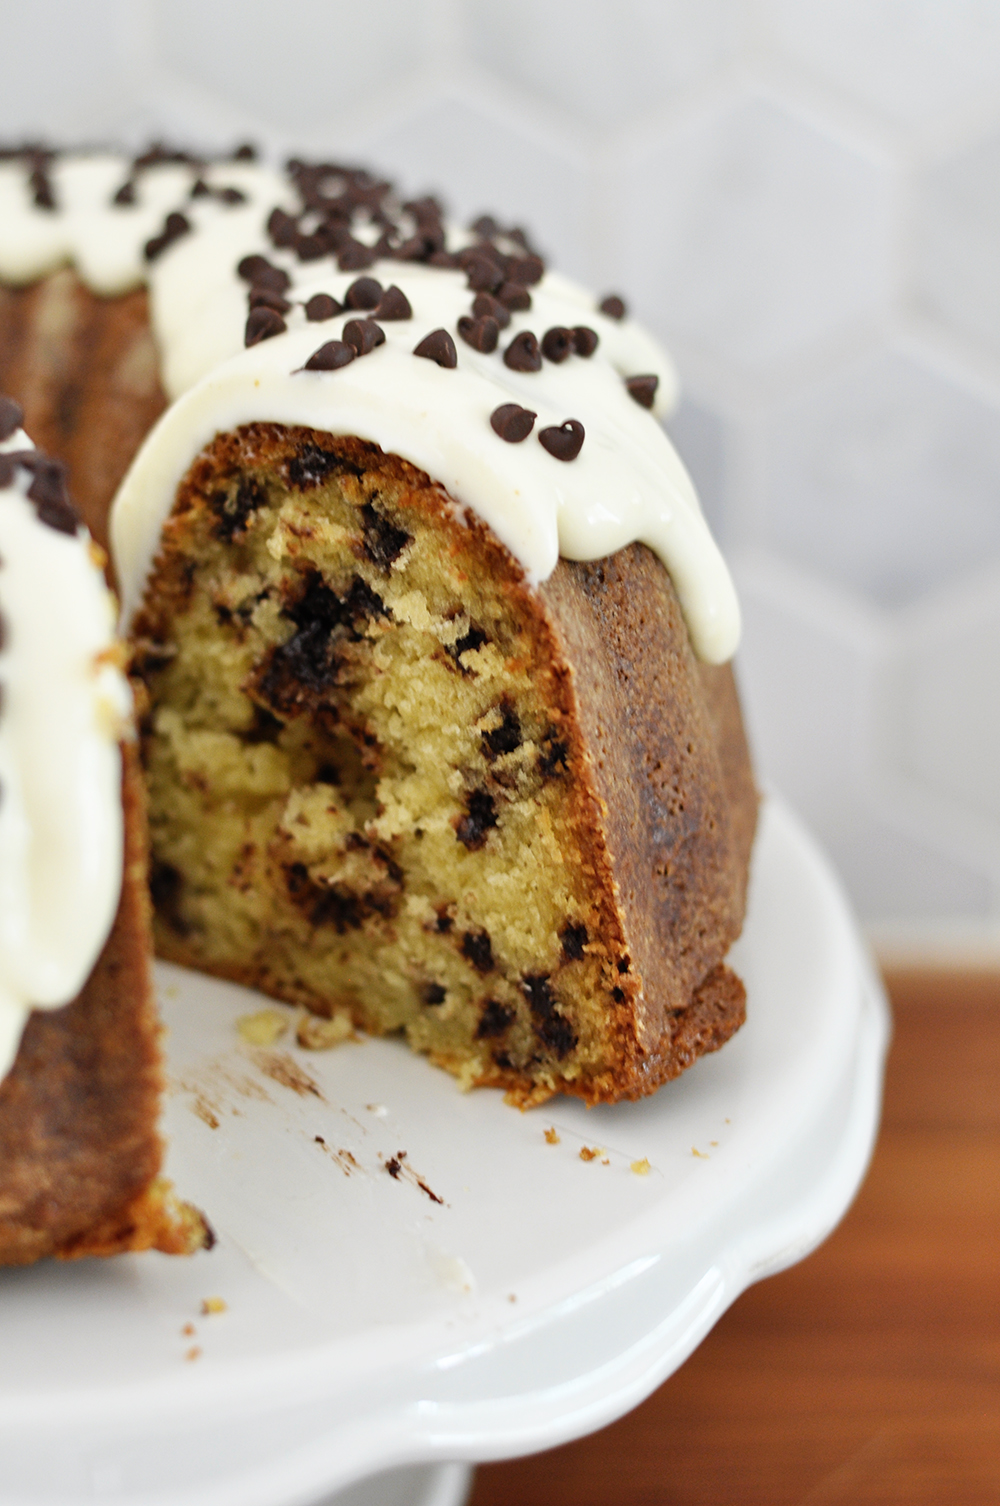 Easy & delicious, this chocolate chip sour cream bundt cake is always a hit!